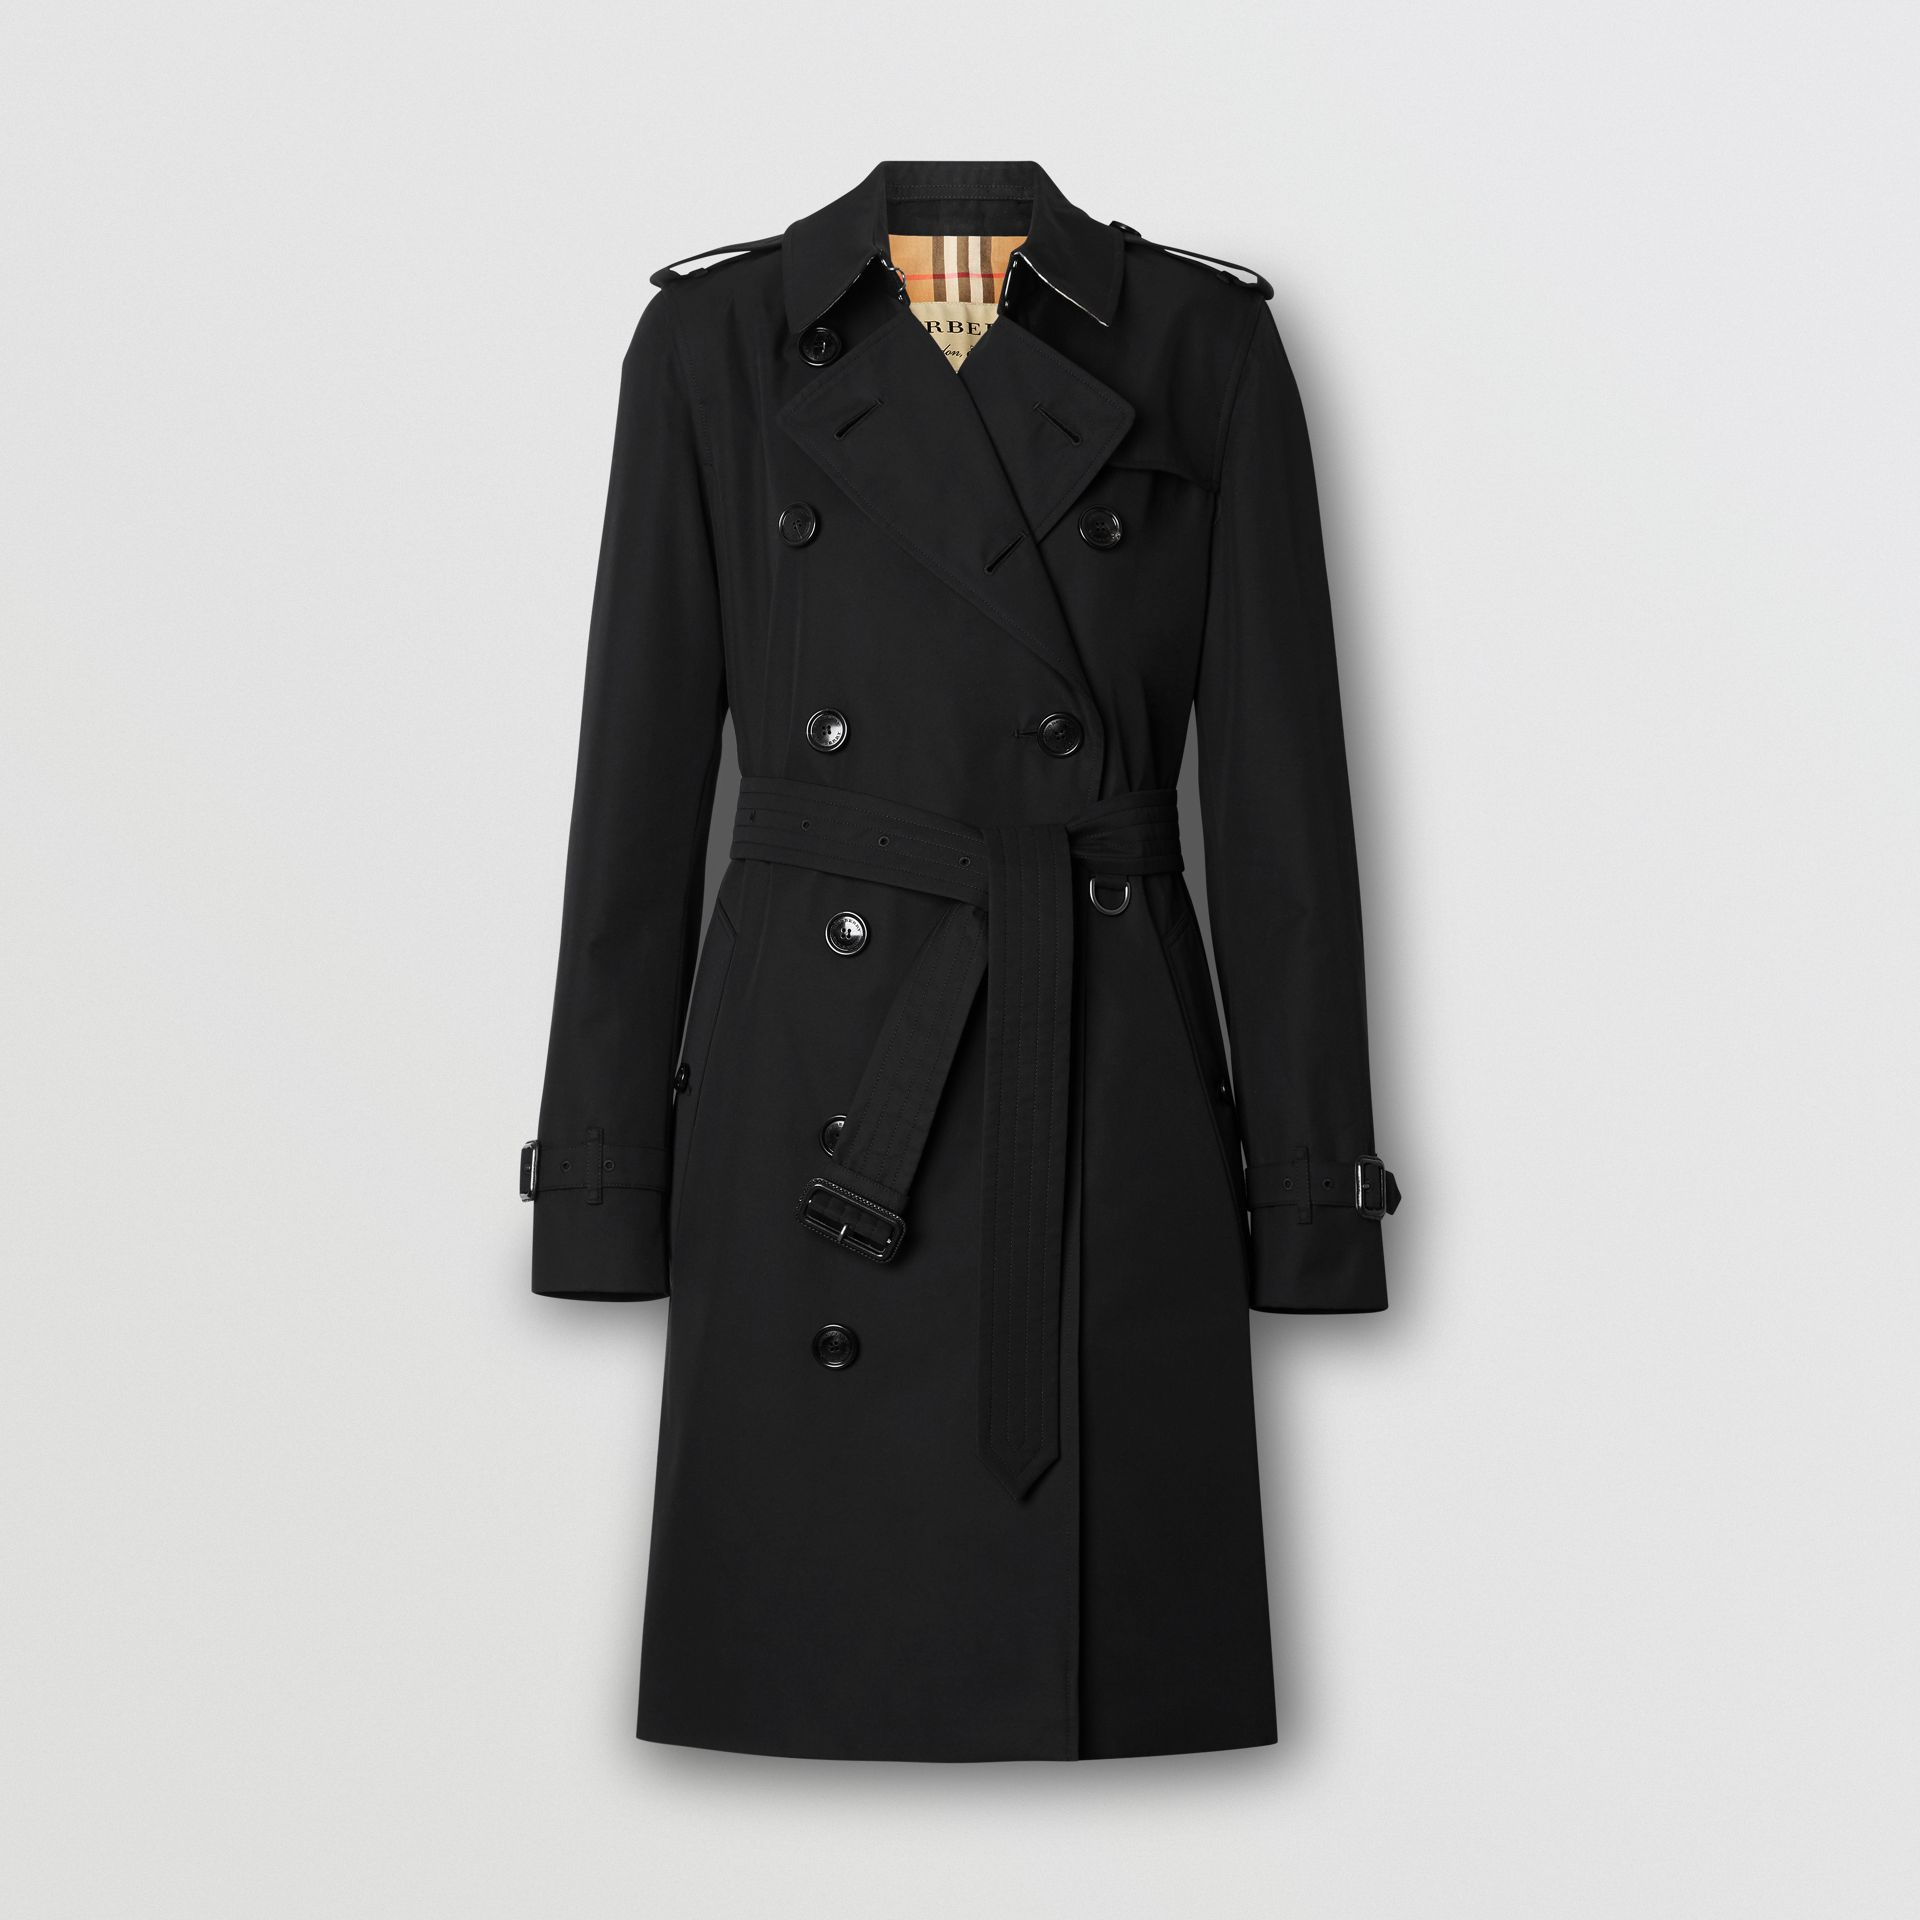 Kensington Fit Cotton Gabardine Trench Coat in Black - Women | Burberry Singapore - gallery image 3